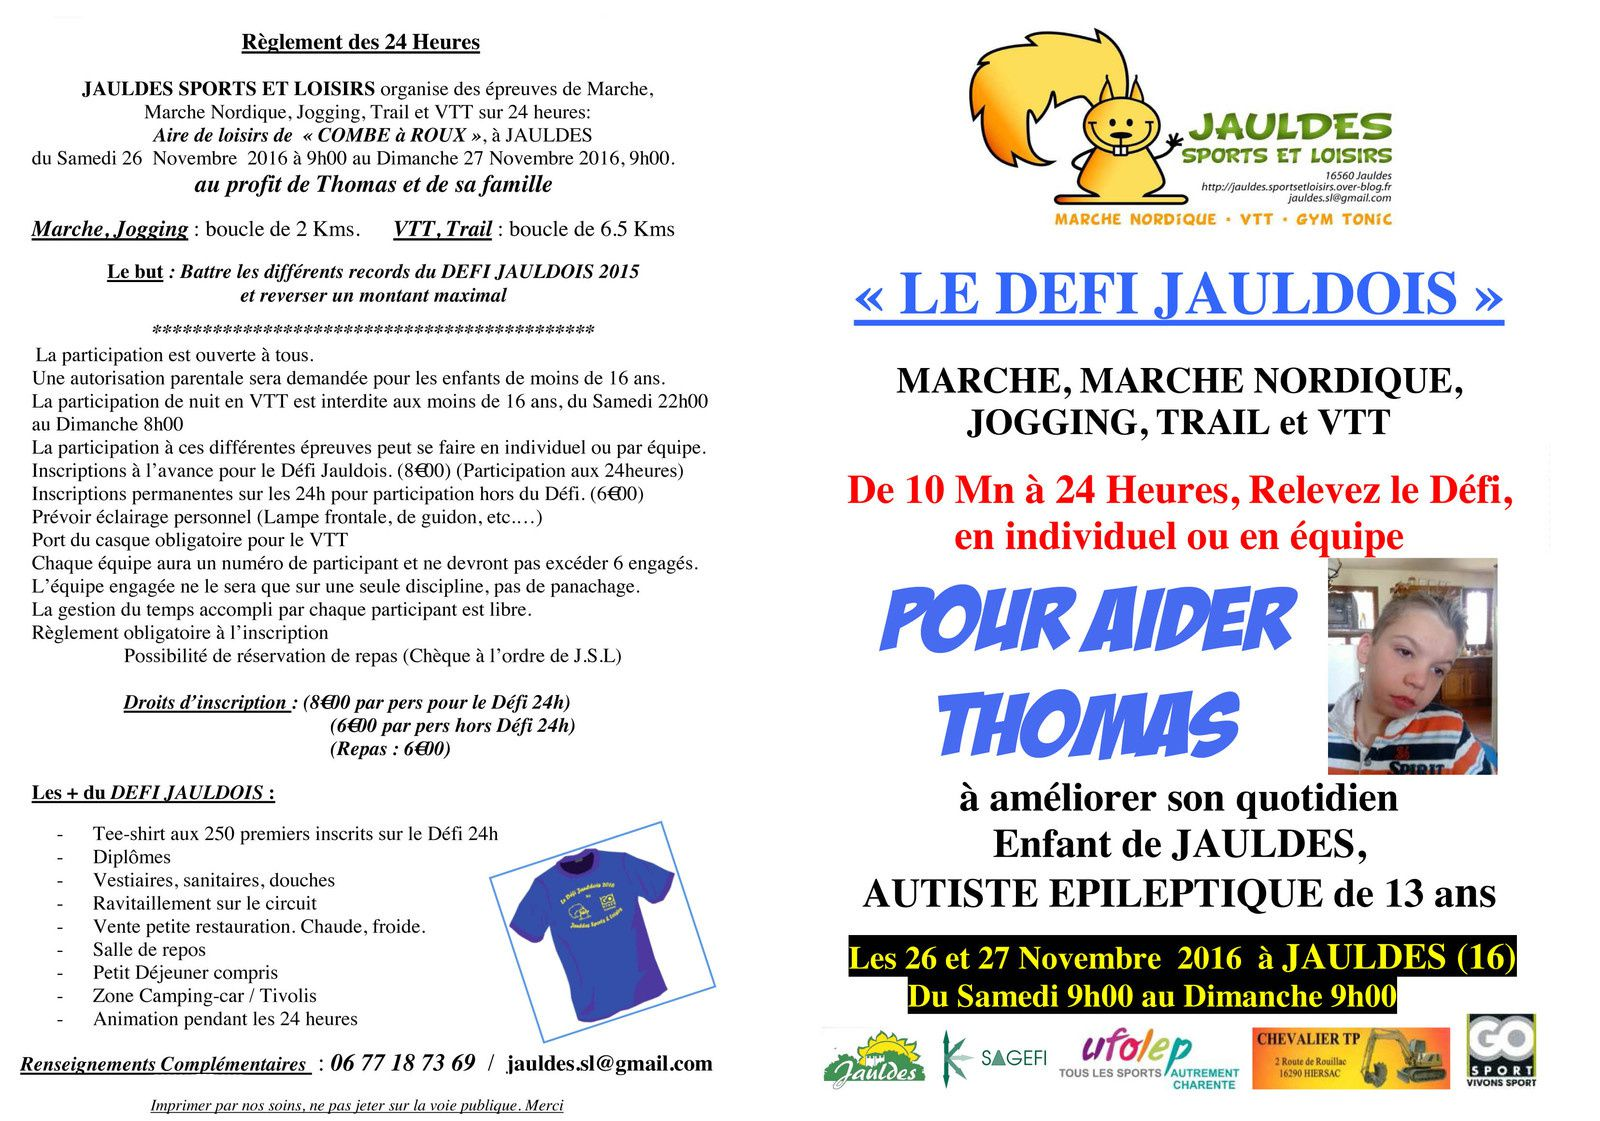 DEFI JAULDOIS 2016 : BULLETINS D'INSCRIPTION